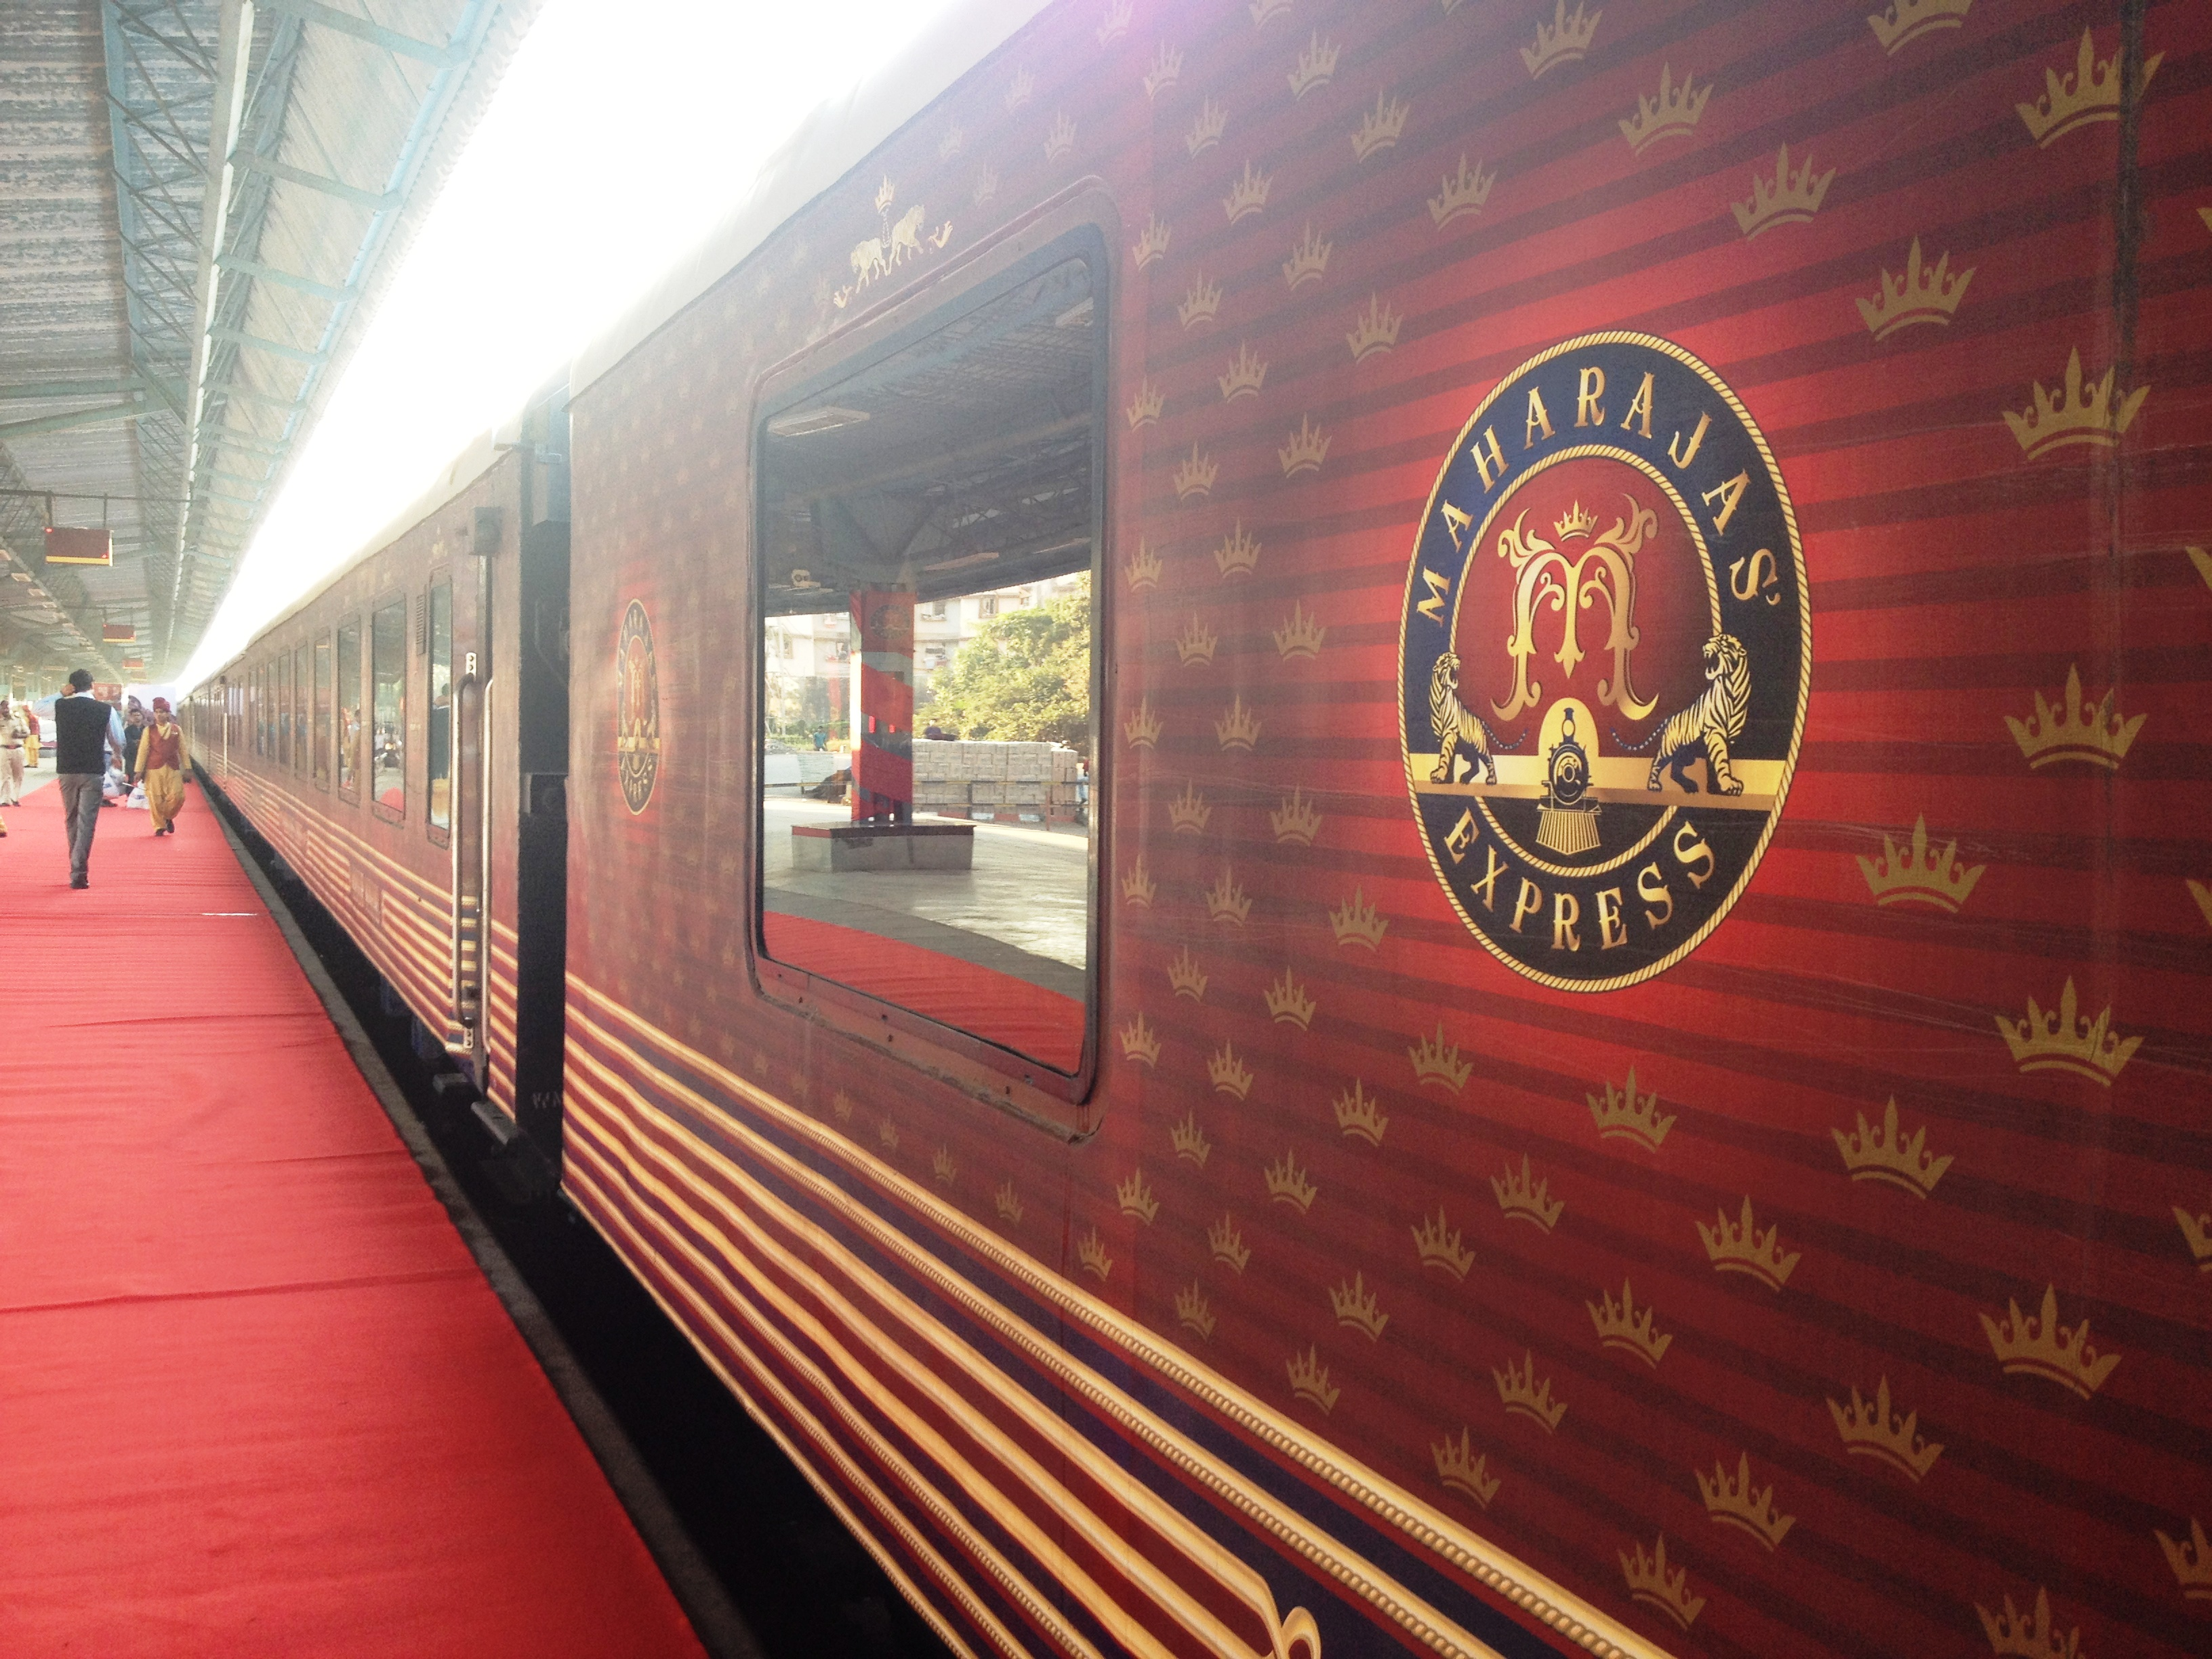 maharajas express review rajasthan like royalty onboard a luxury